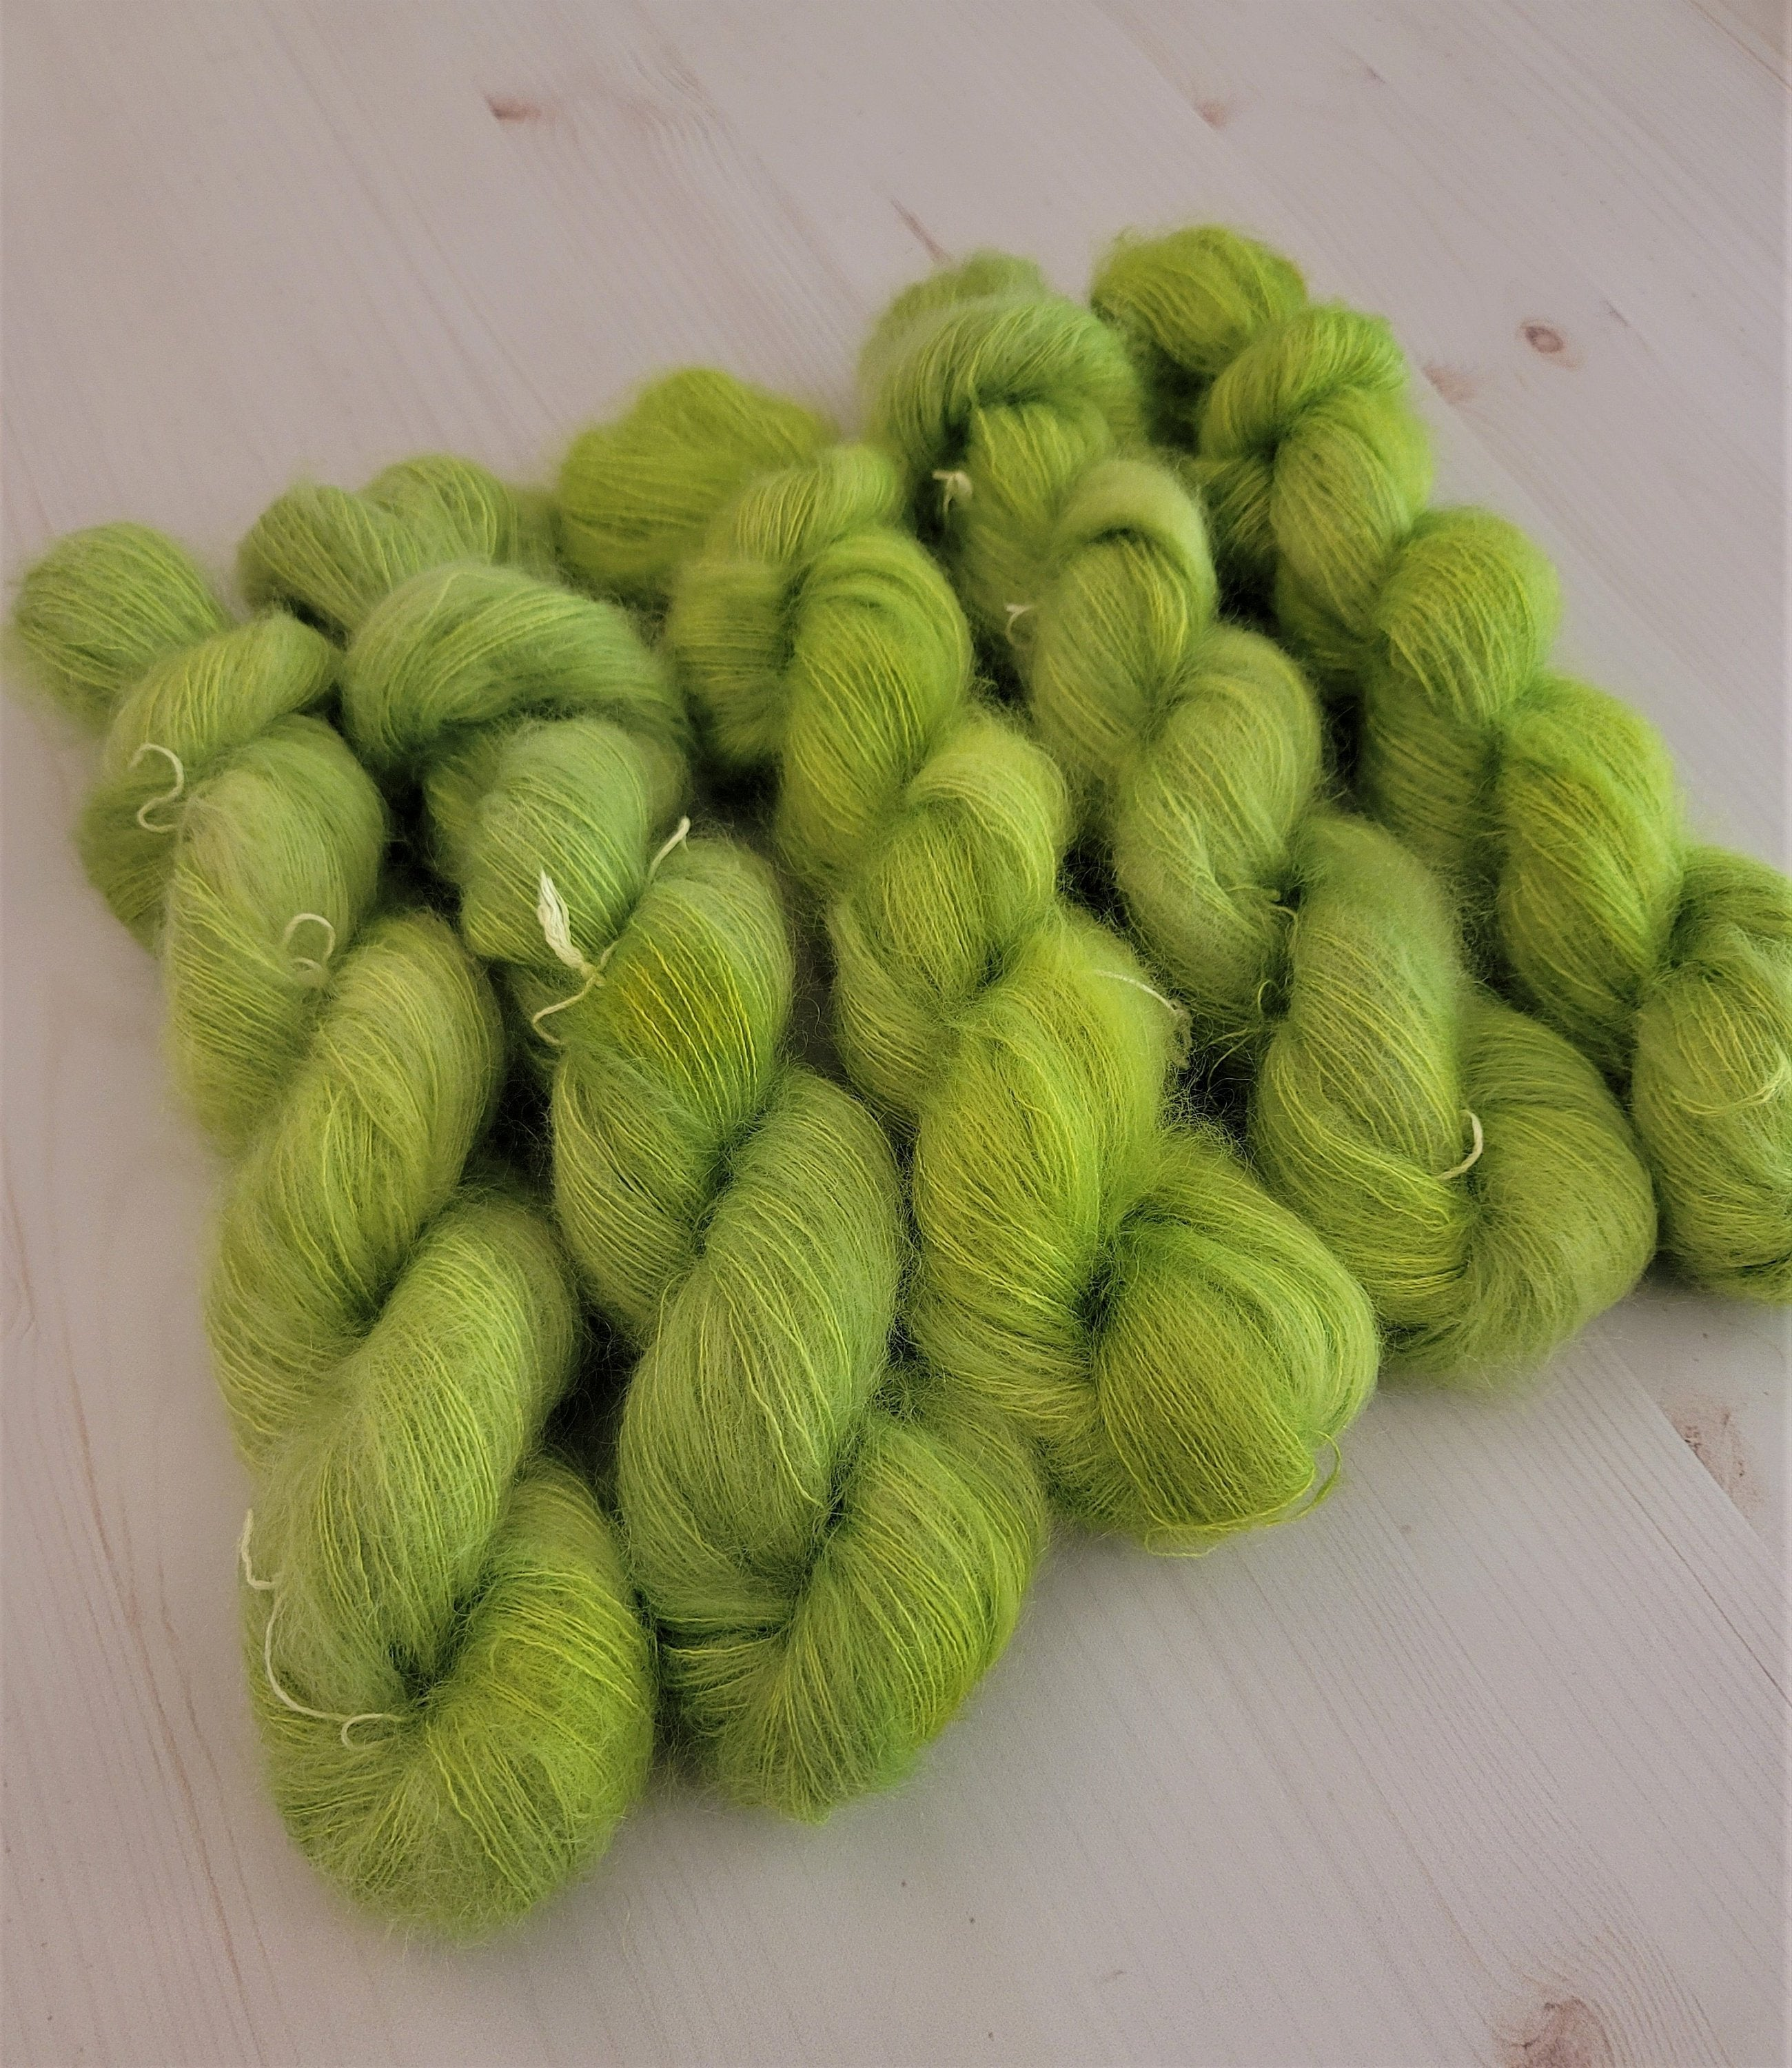 Pumpkins and Wools Mr. Grinch - Silk Mohair - Knitting - Crocheting 10.00